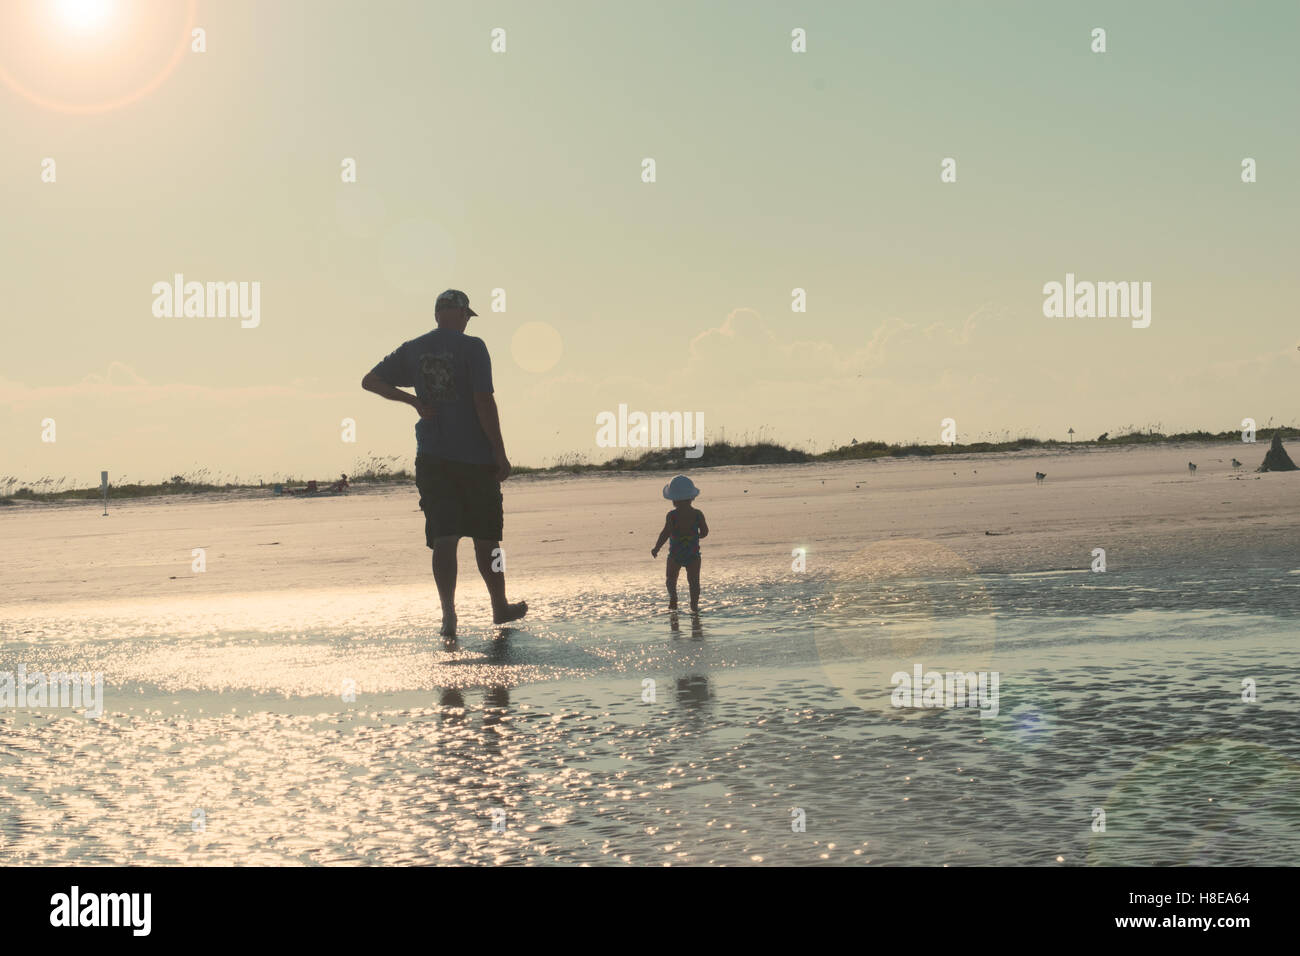 Dad and baby on beach - Stock Image